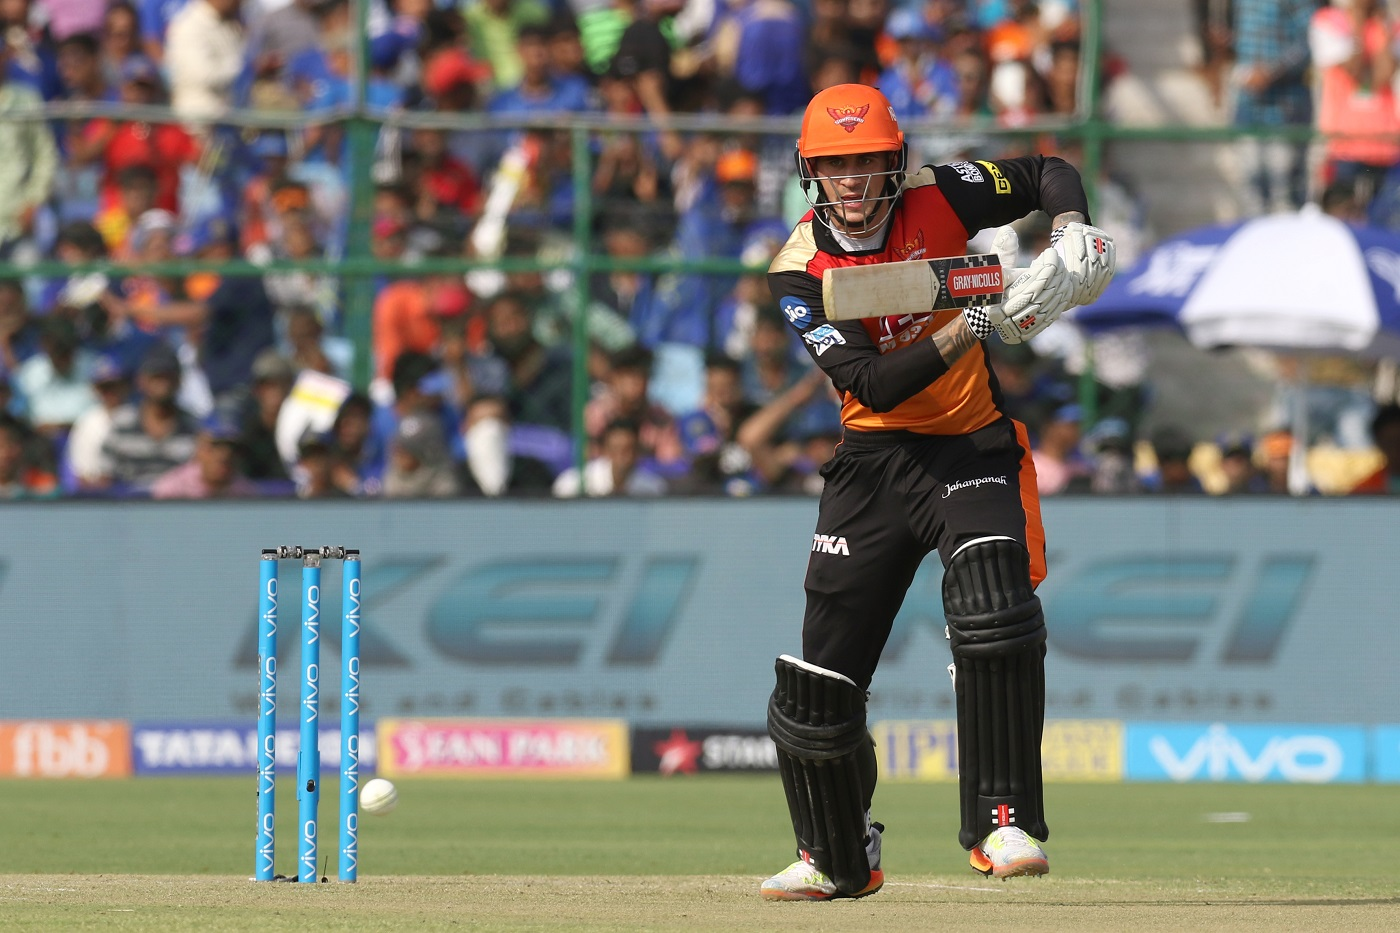 Williamson and sunrisers bowling unit win another thriller